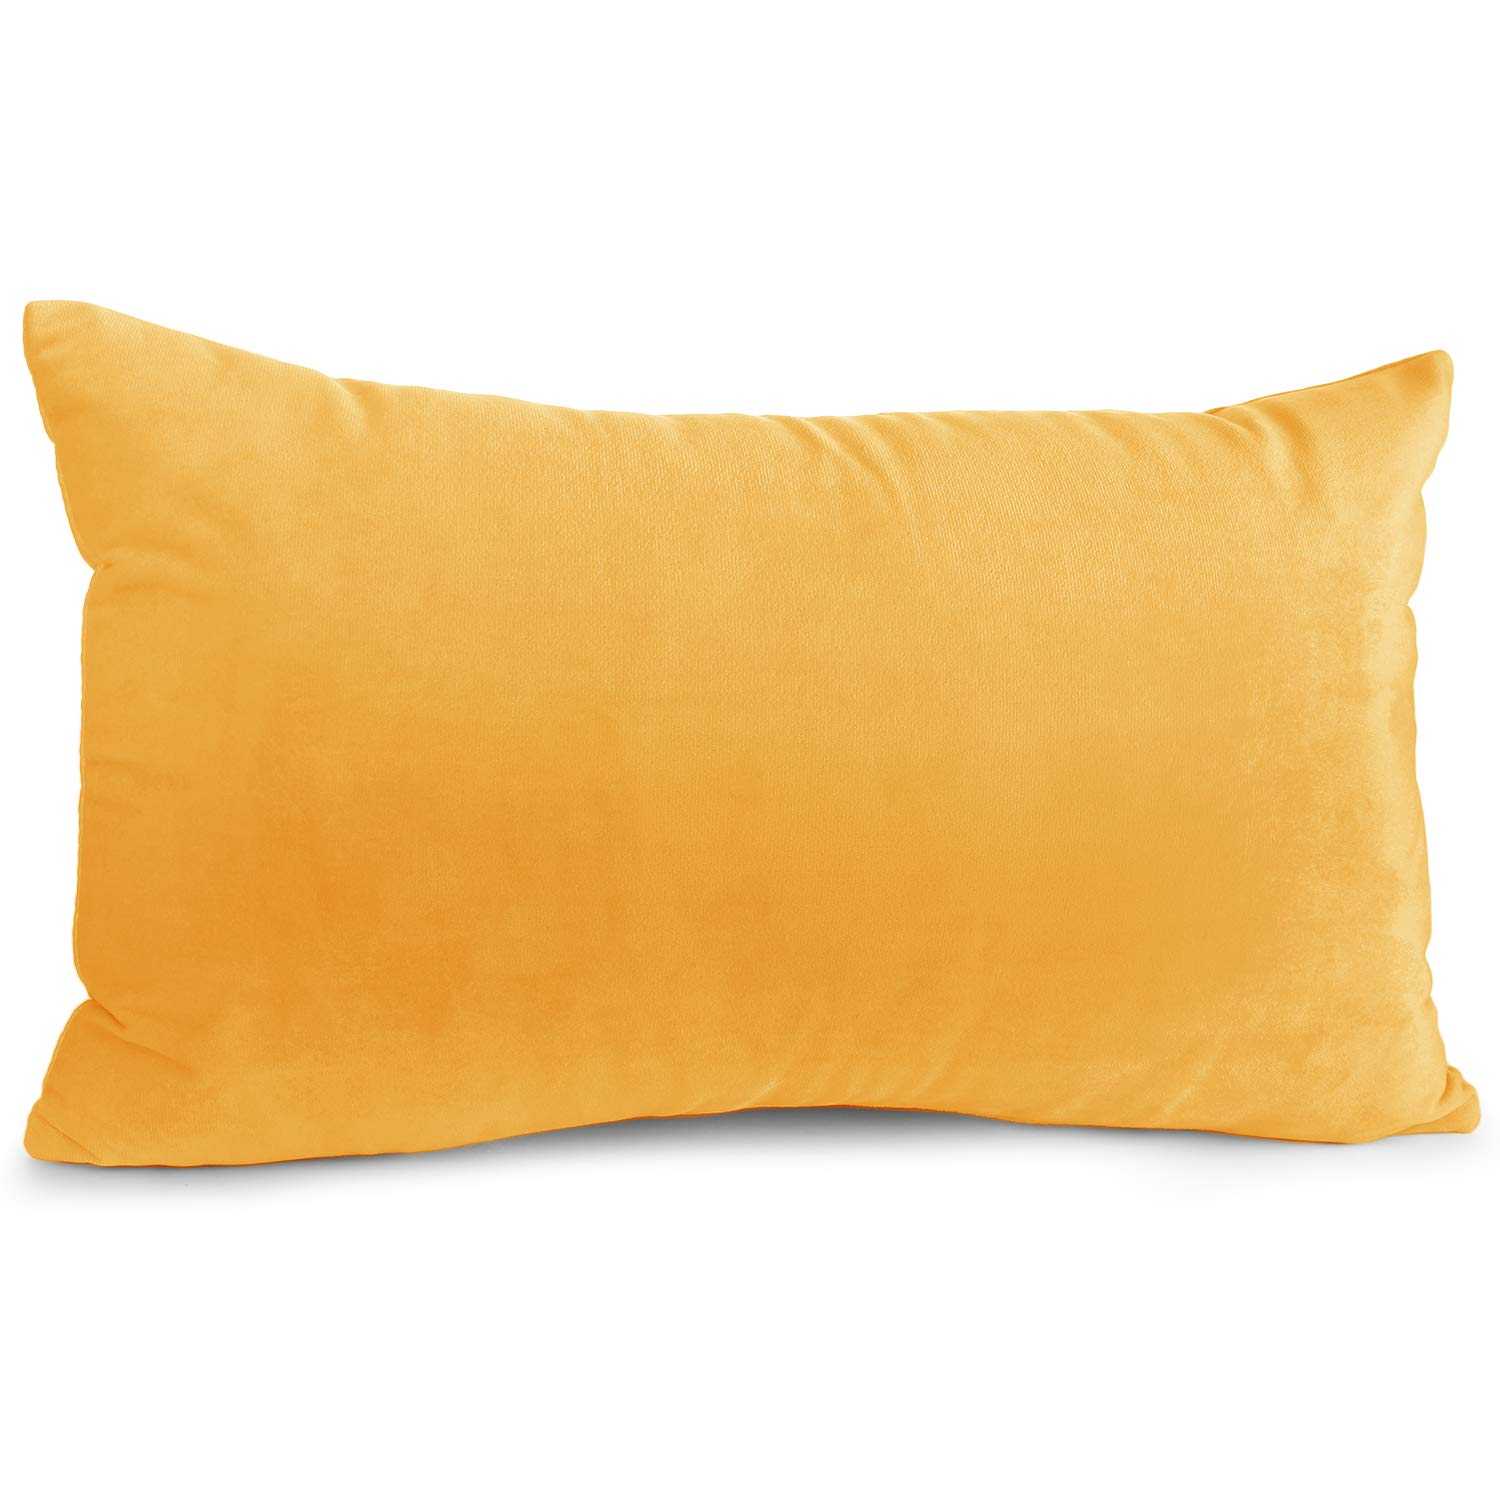 """Nestl Bedding Throw Pillow Cover 12"""" x 20"""" Soft Square Decorative Throw Pillow Covers Cozy Velvet Cushion Case for Sofa Couch Bedroom - Orange"""